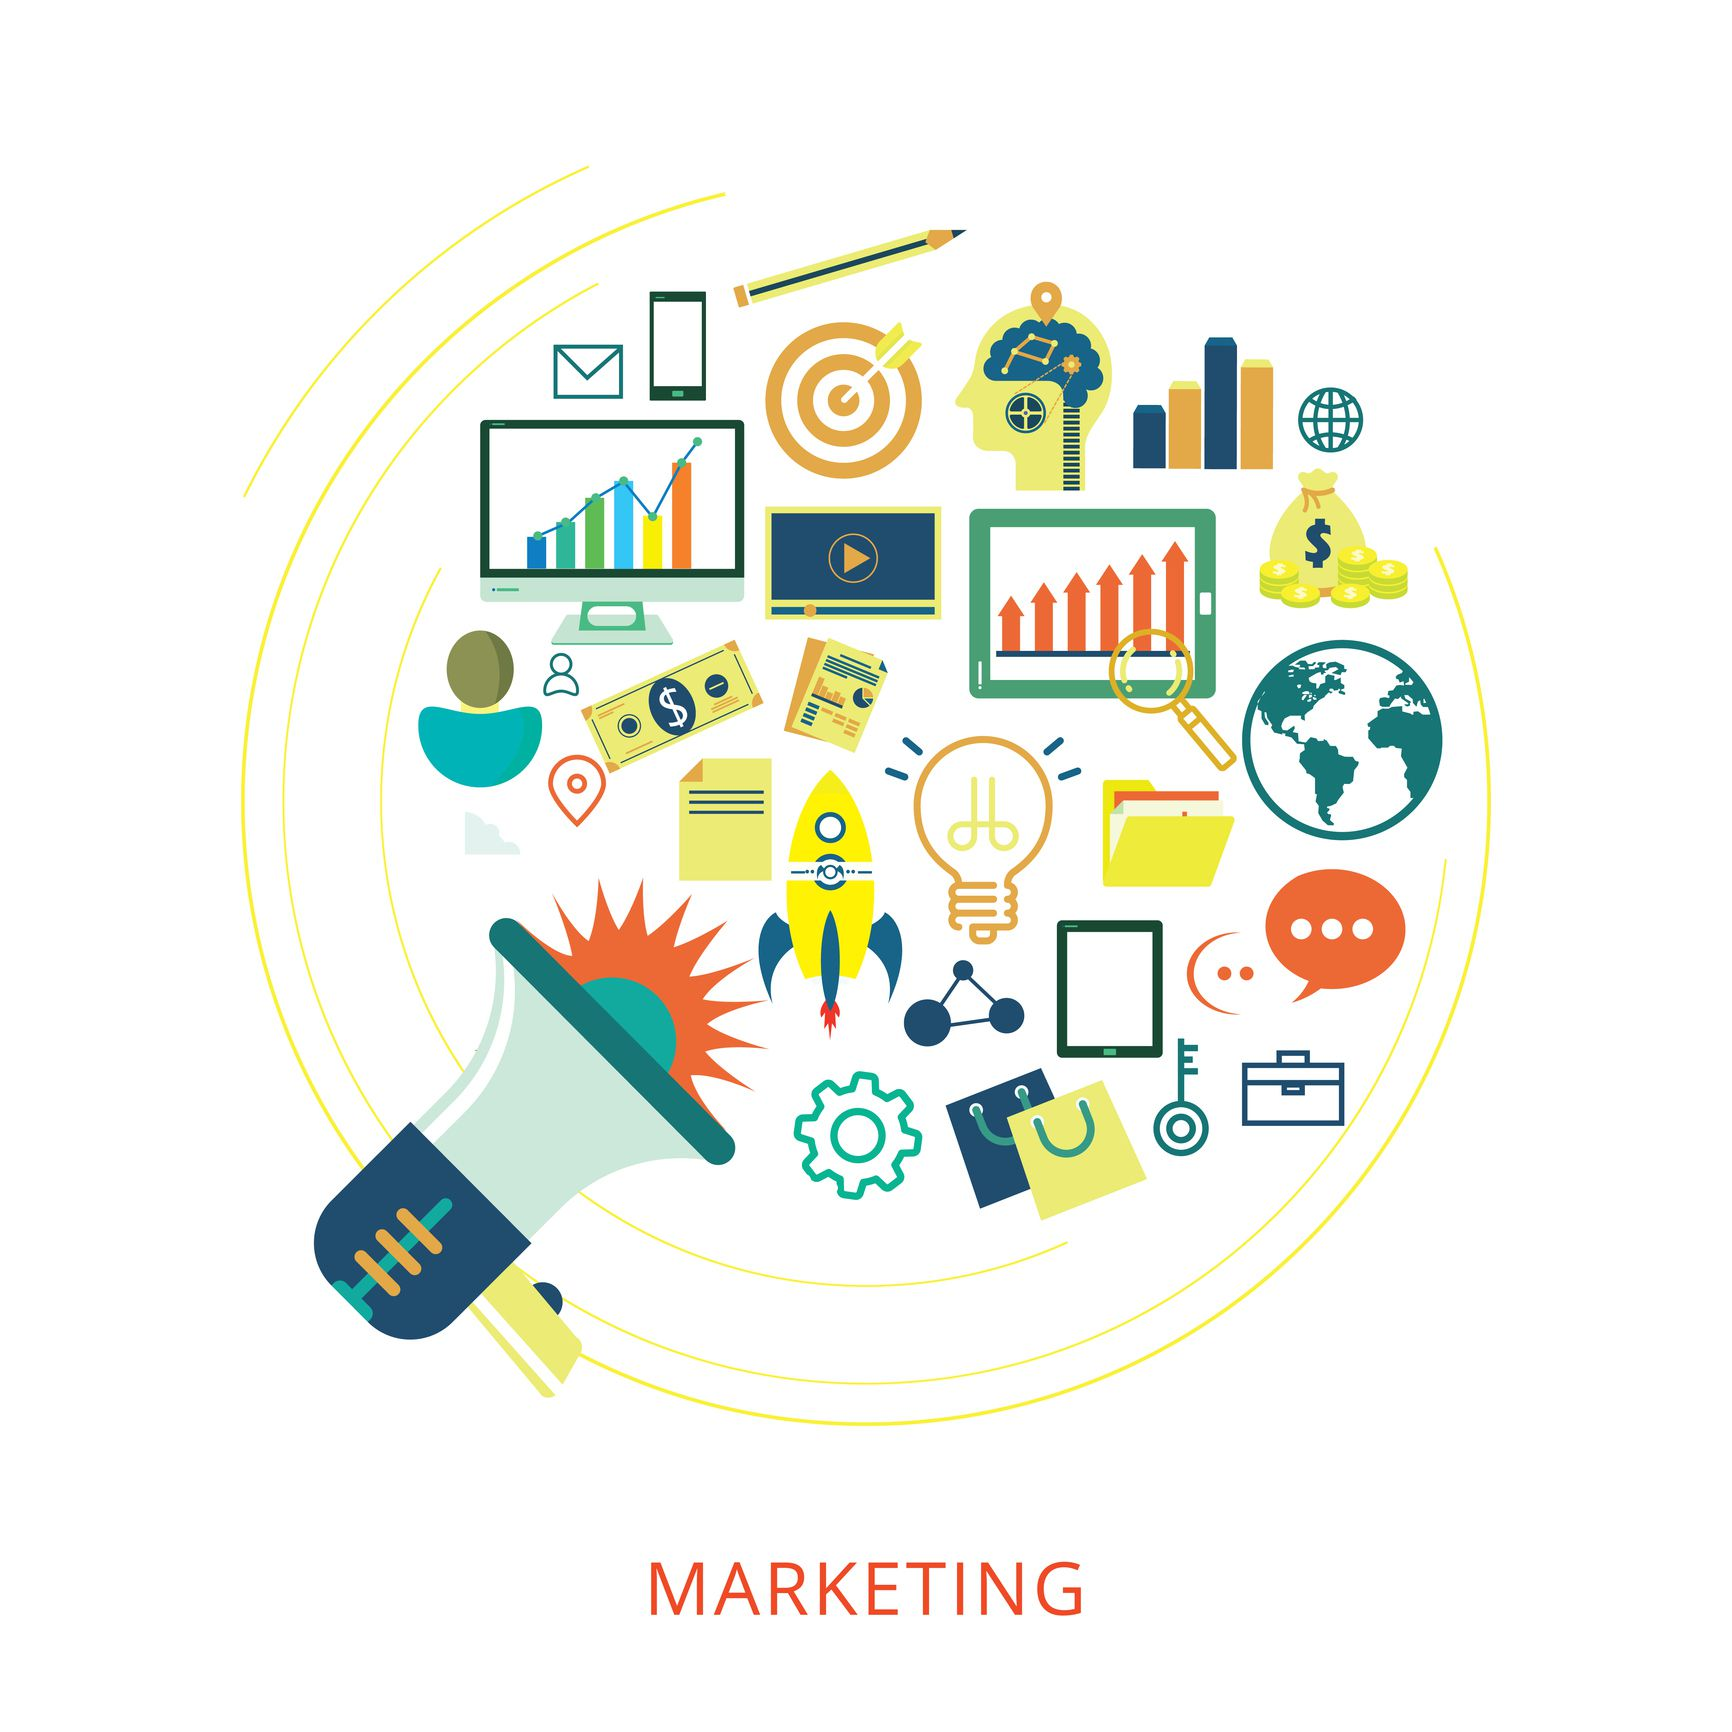 Repurpose Your Content to Maximize Marketing Results